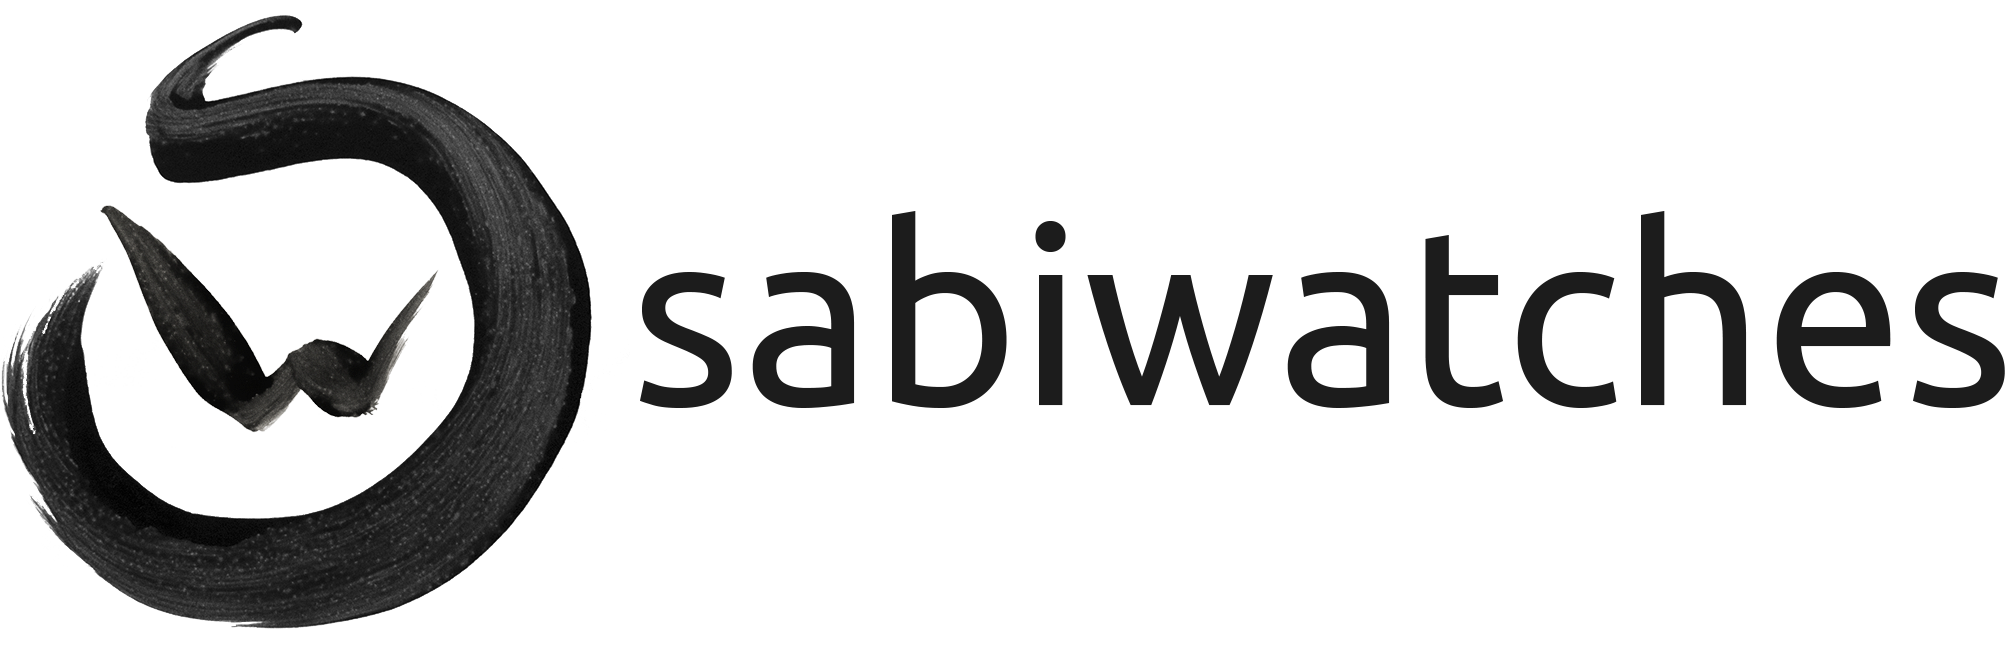 Sabiwatches